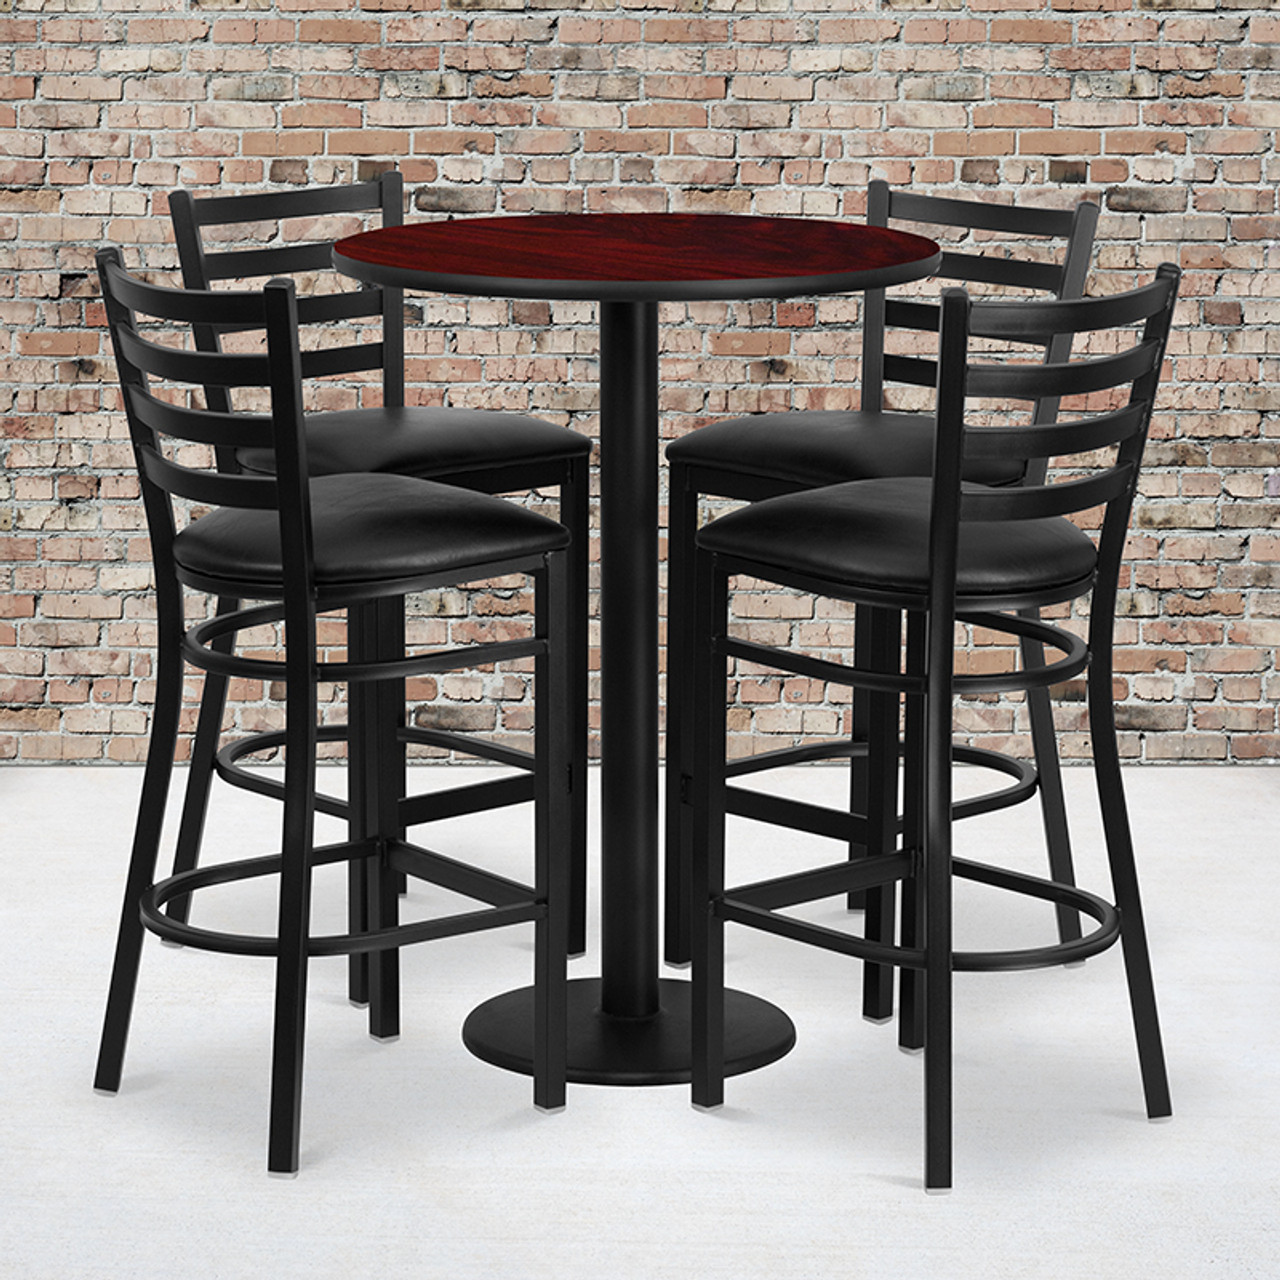 Laminate Restaurant Bar Table and Stool Sets